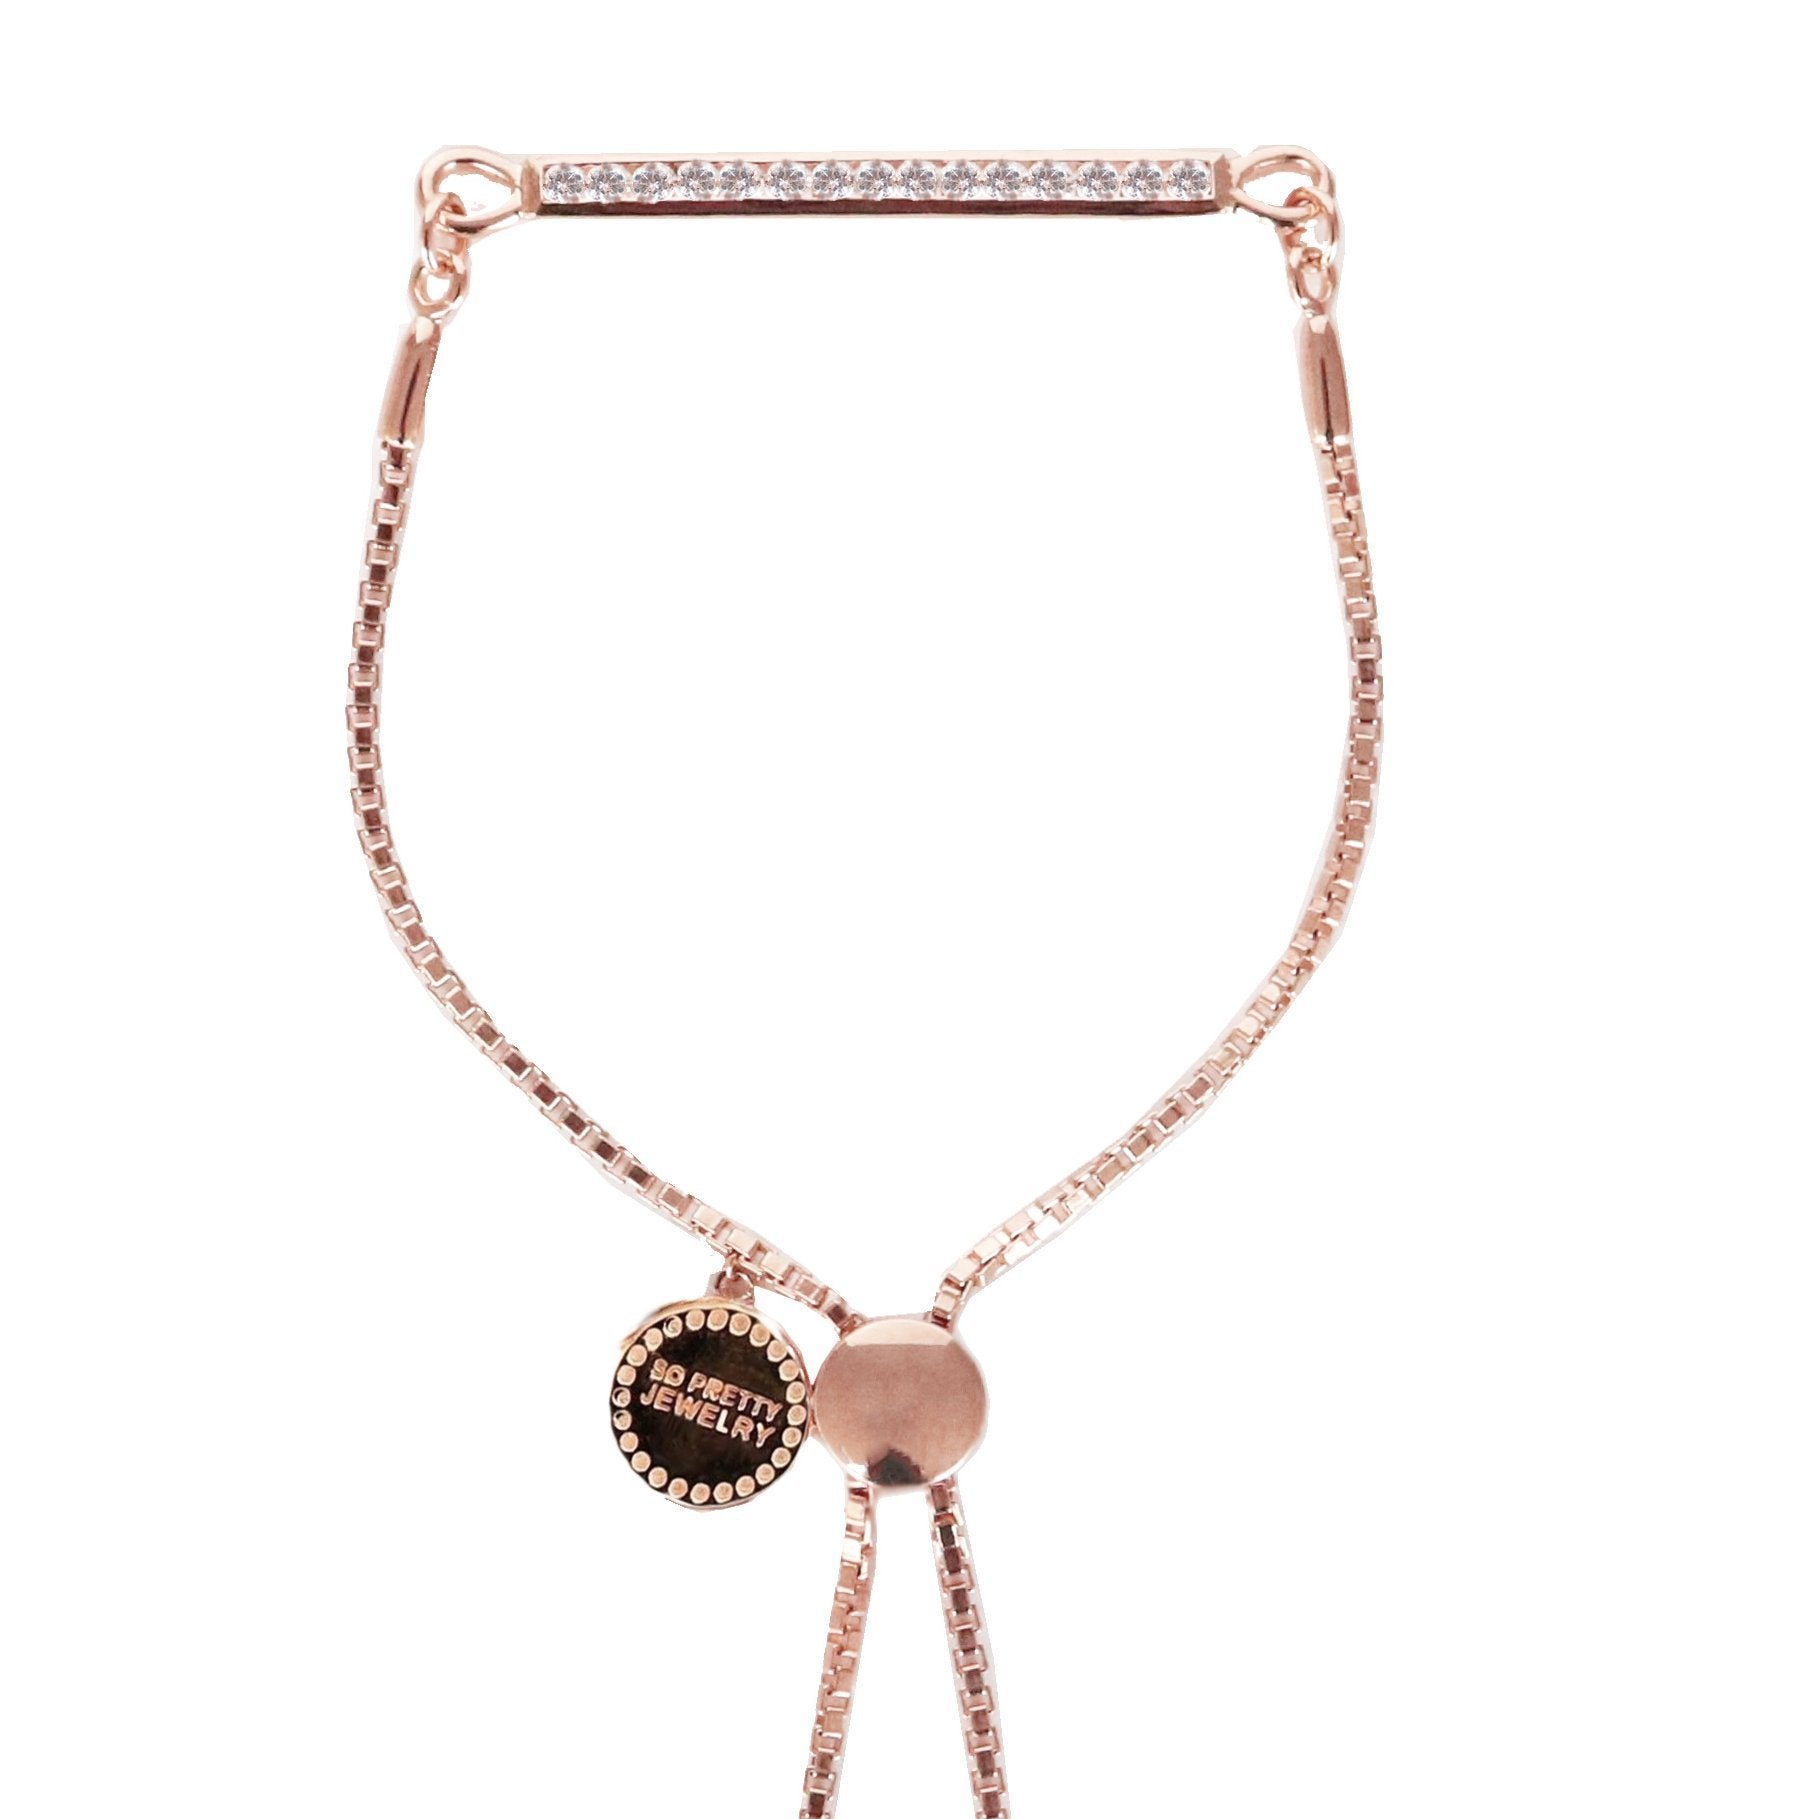 DREAM STARDUST ADJUSTABLE BRACELET - CUBIC ZIRCONIA & ROSE GOLD - SO PRETTY CARA COTTER